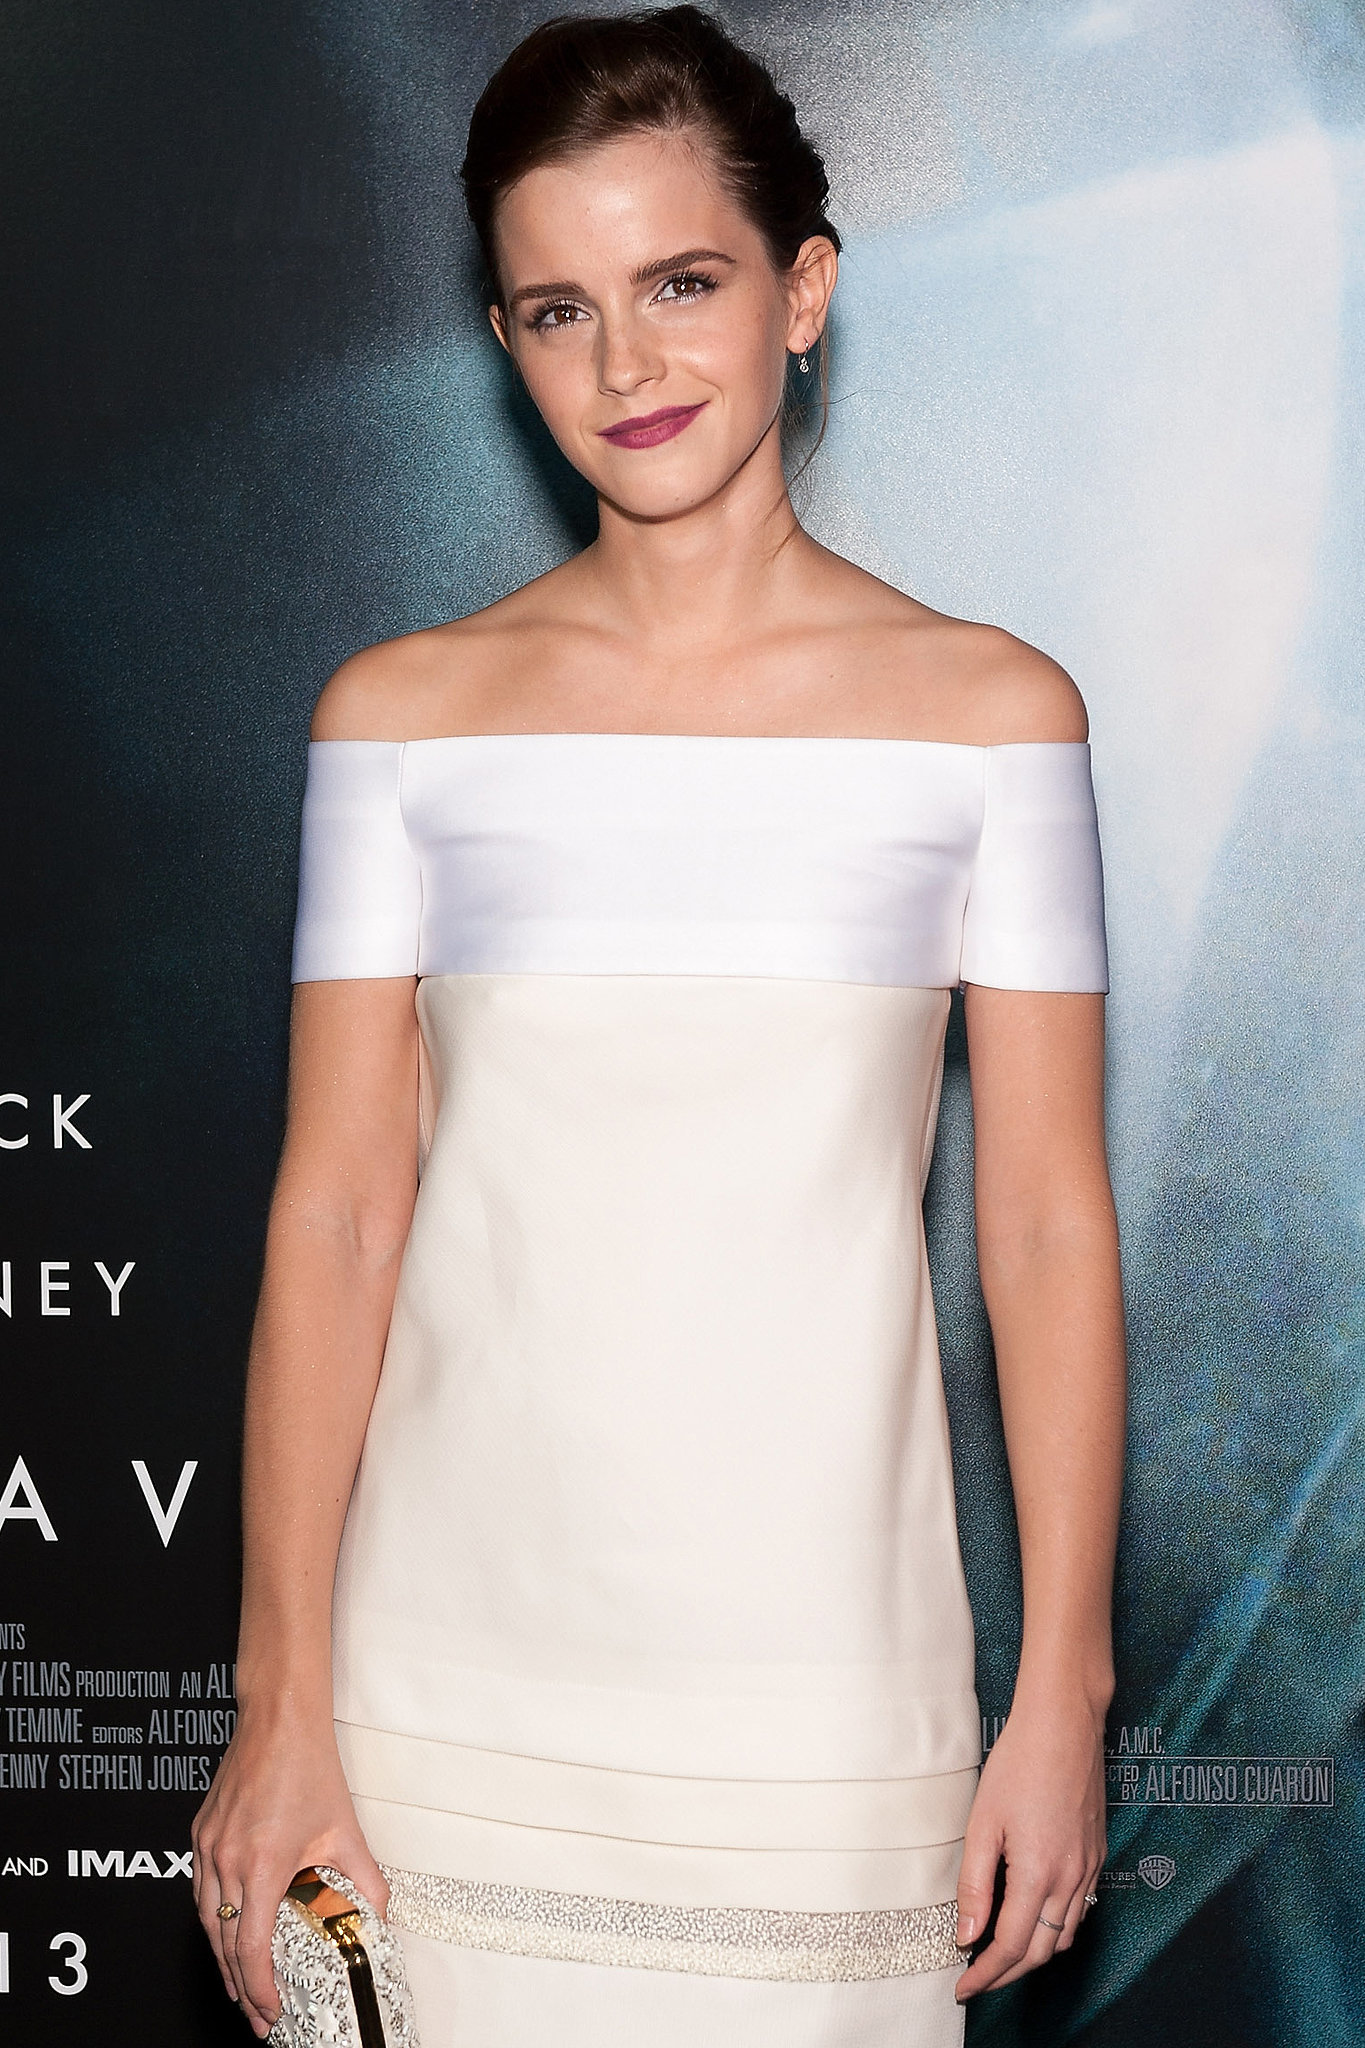 Emma Watson joined Regression, a thriller costarring Ethan Hawke. Alejandro Amenábar (The Others) is directing the movie from his own screenplay.